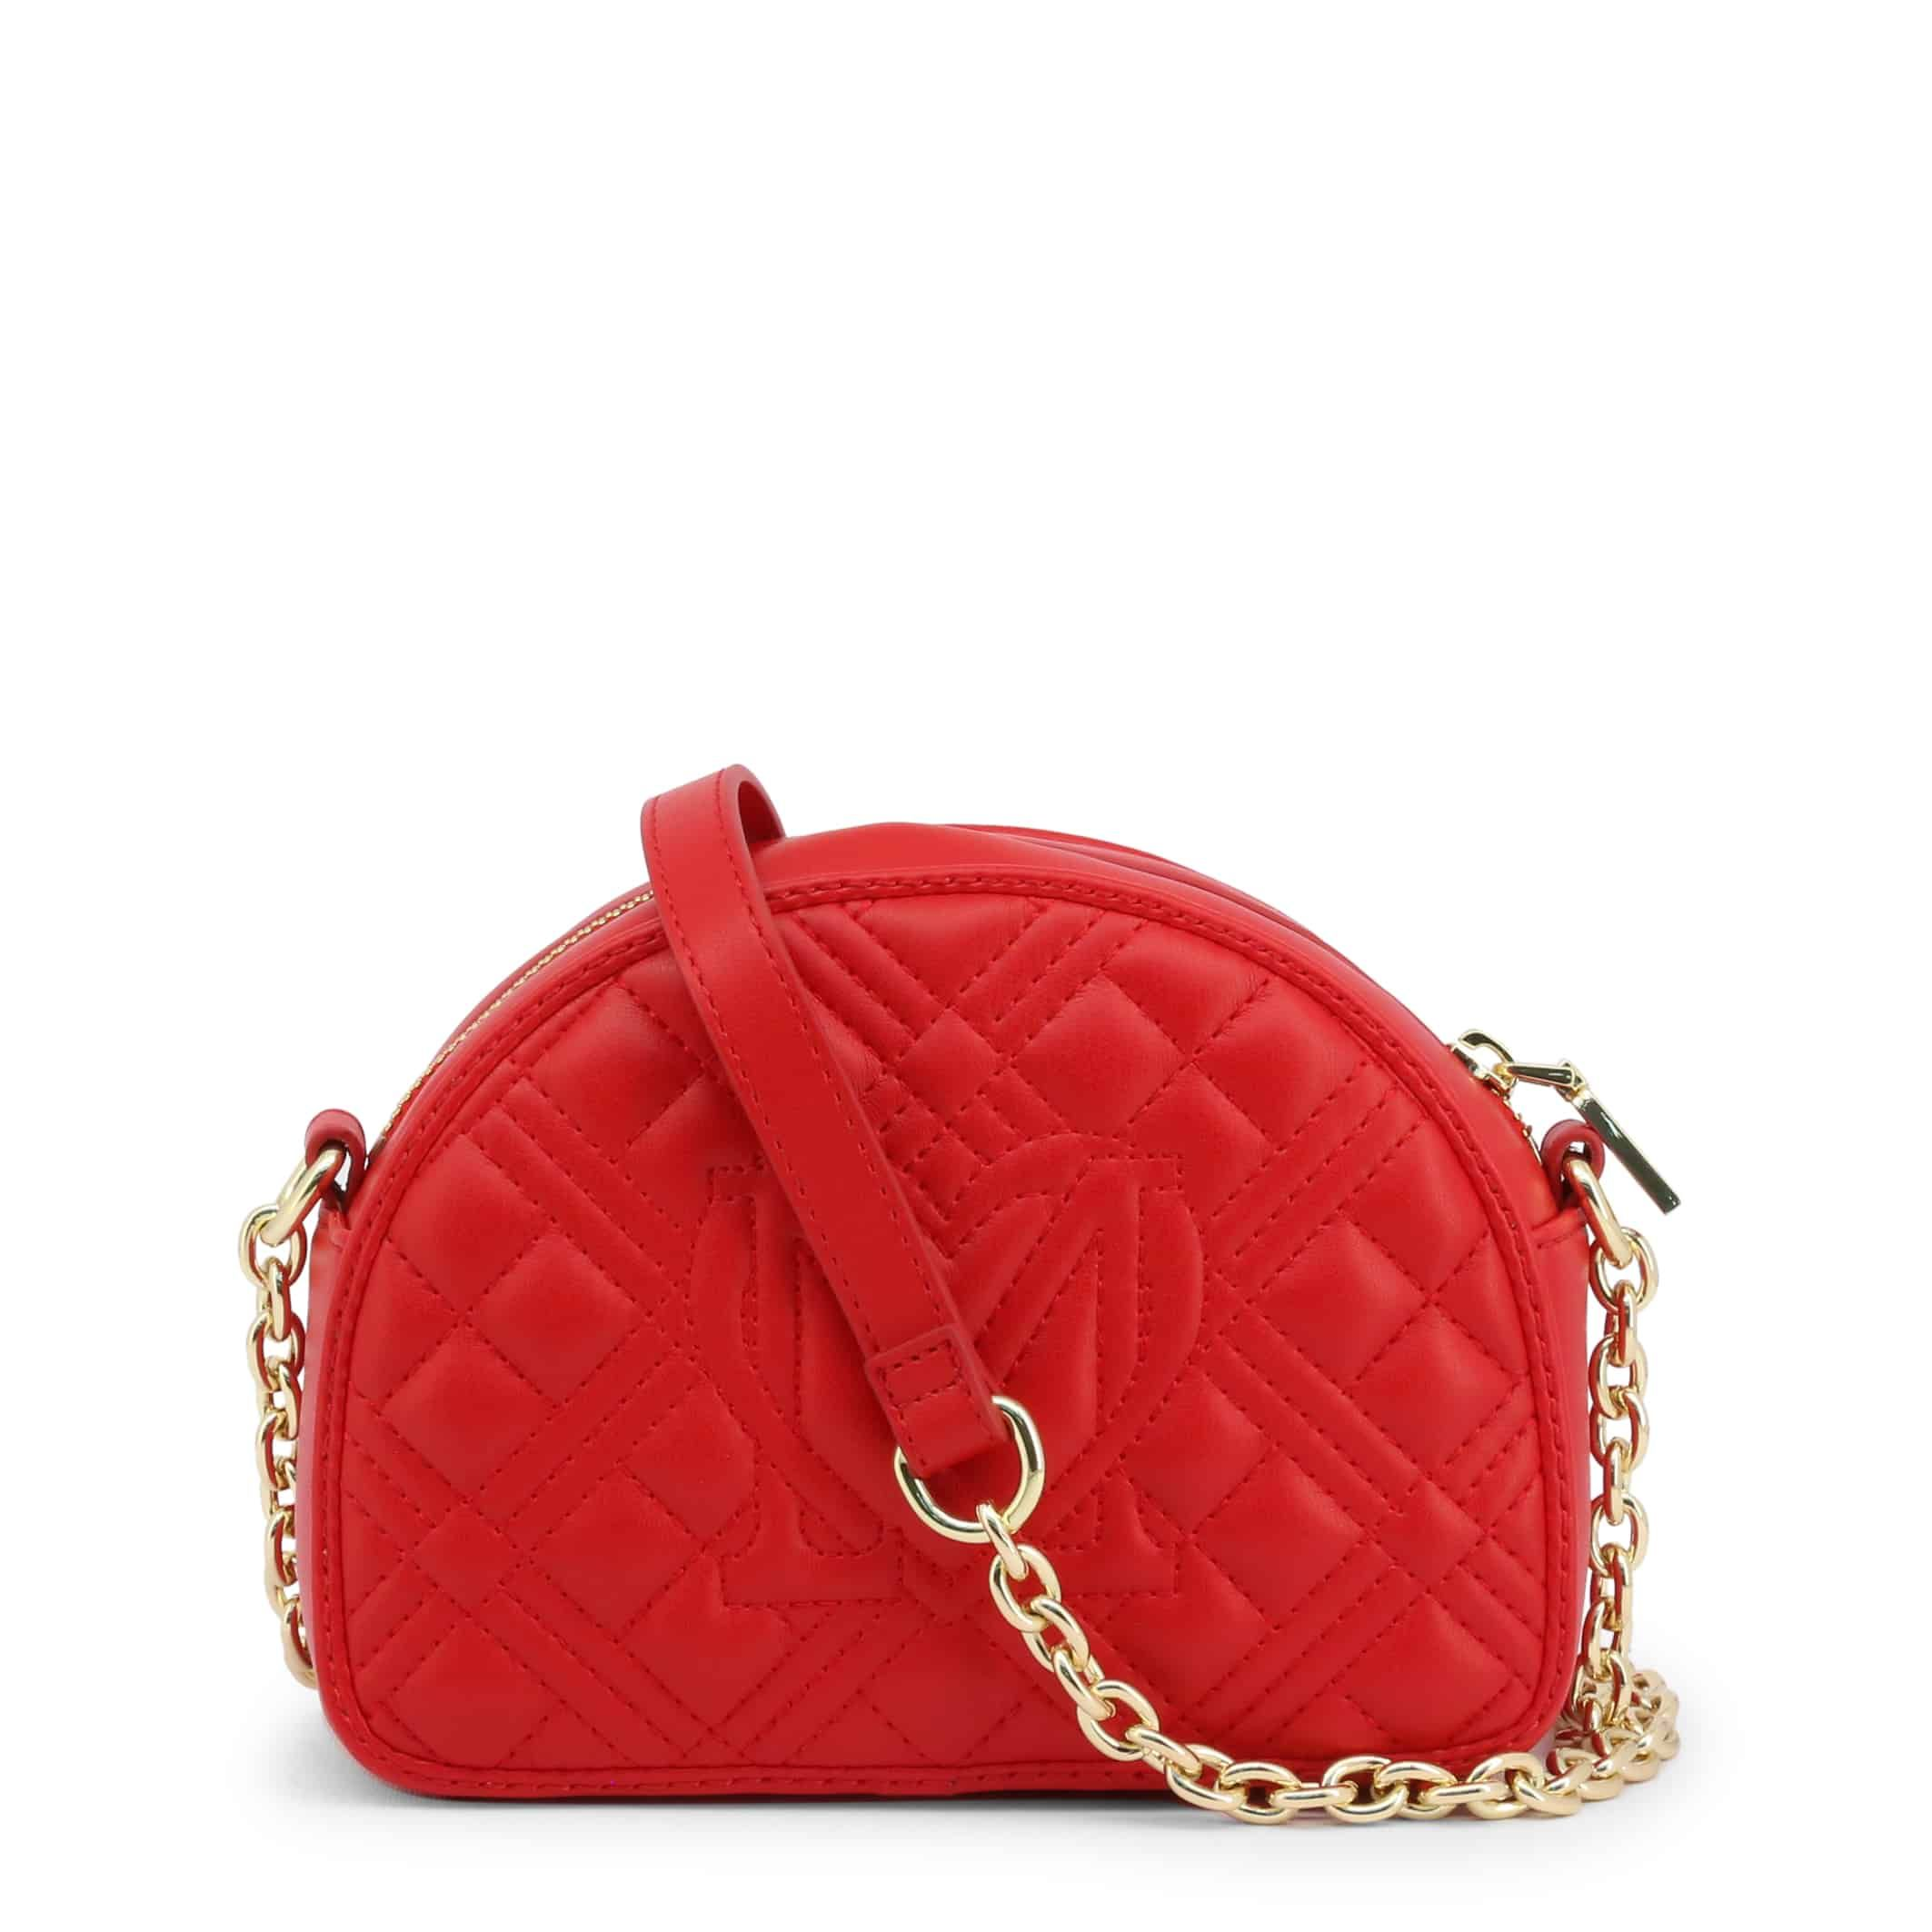 1Af86C10 8B43 11Eb Abbe 756064413543 Love Moschino - Jc4004Pp1Cla0 - Red